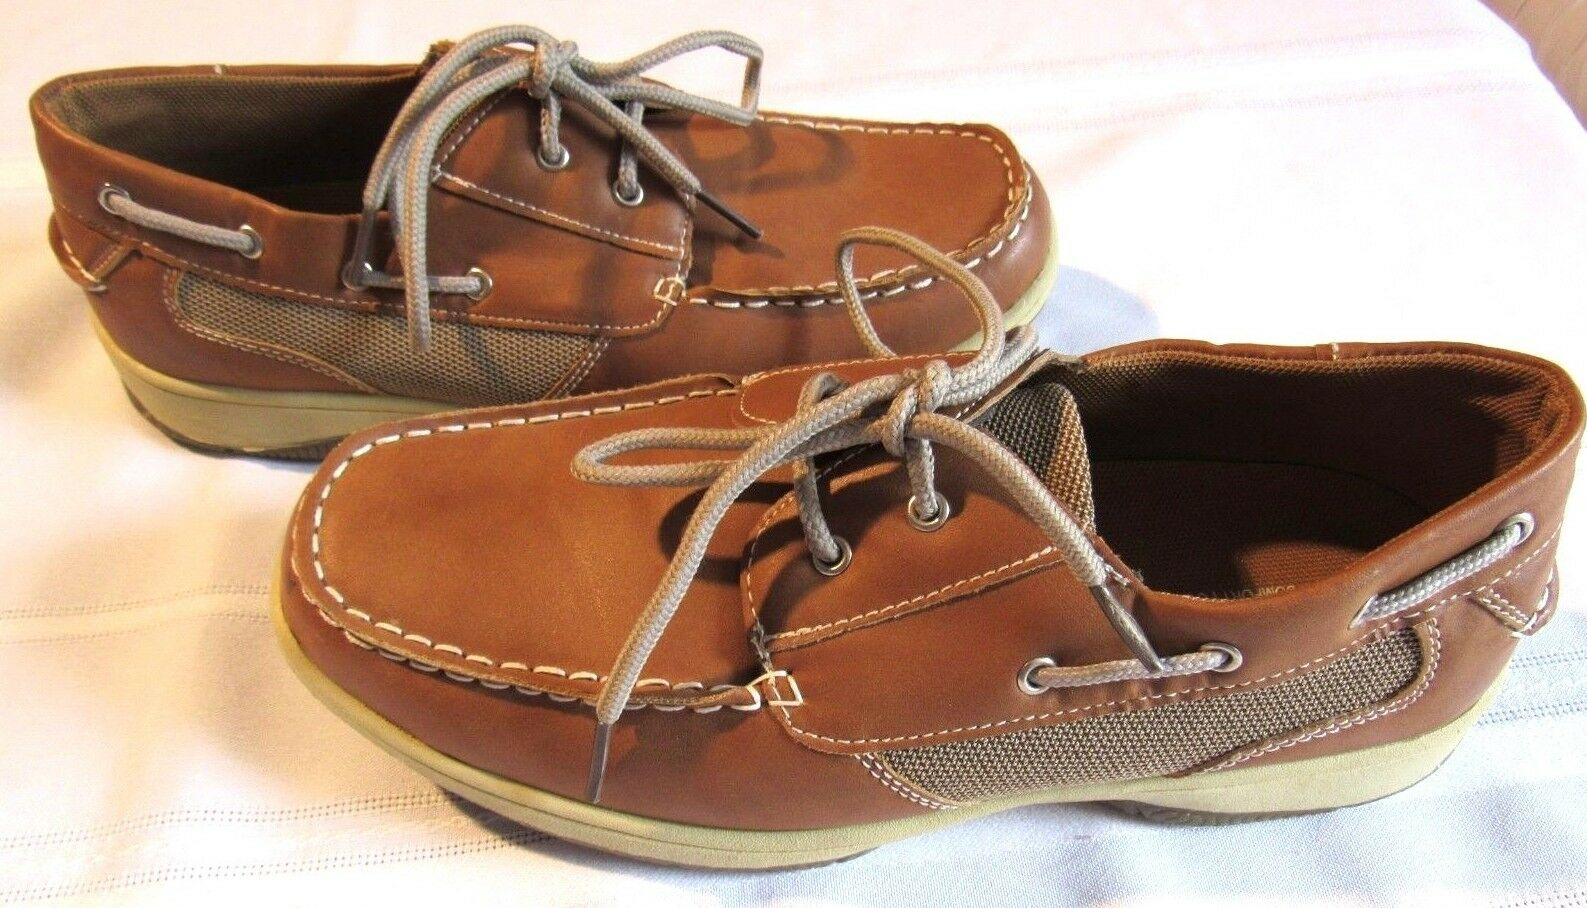 DEER STAGS MEN'S BROWN BOAT LOAFER COMFORT SHOES SIZE 6 1 2 M NEW WITHOUT TAGS